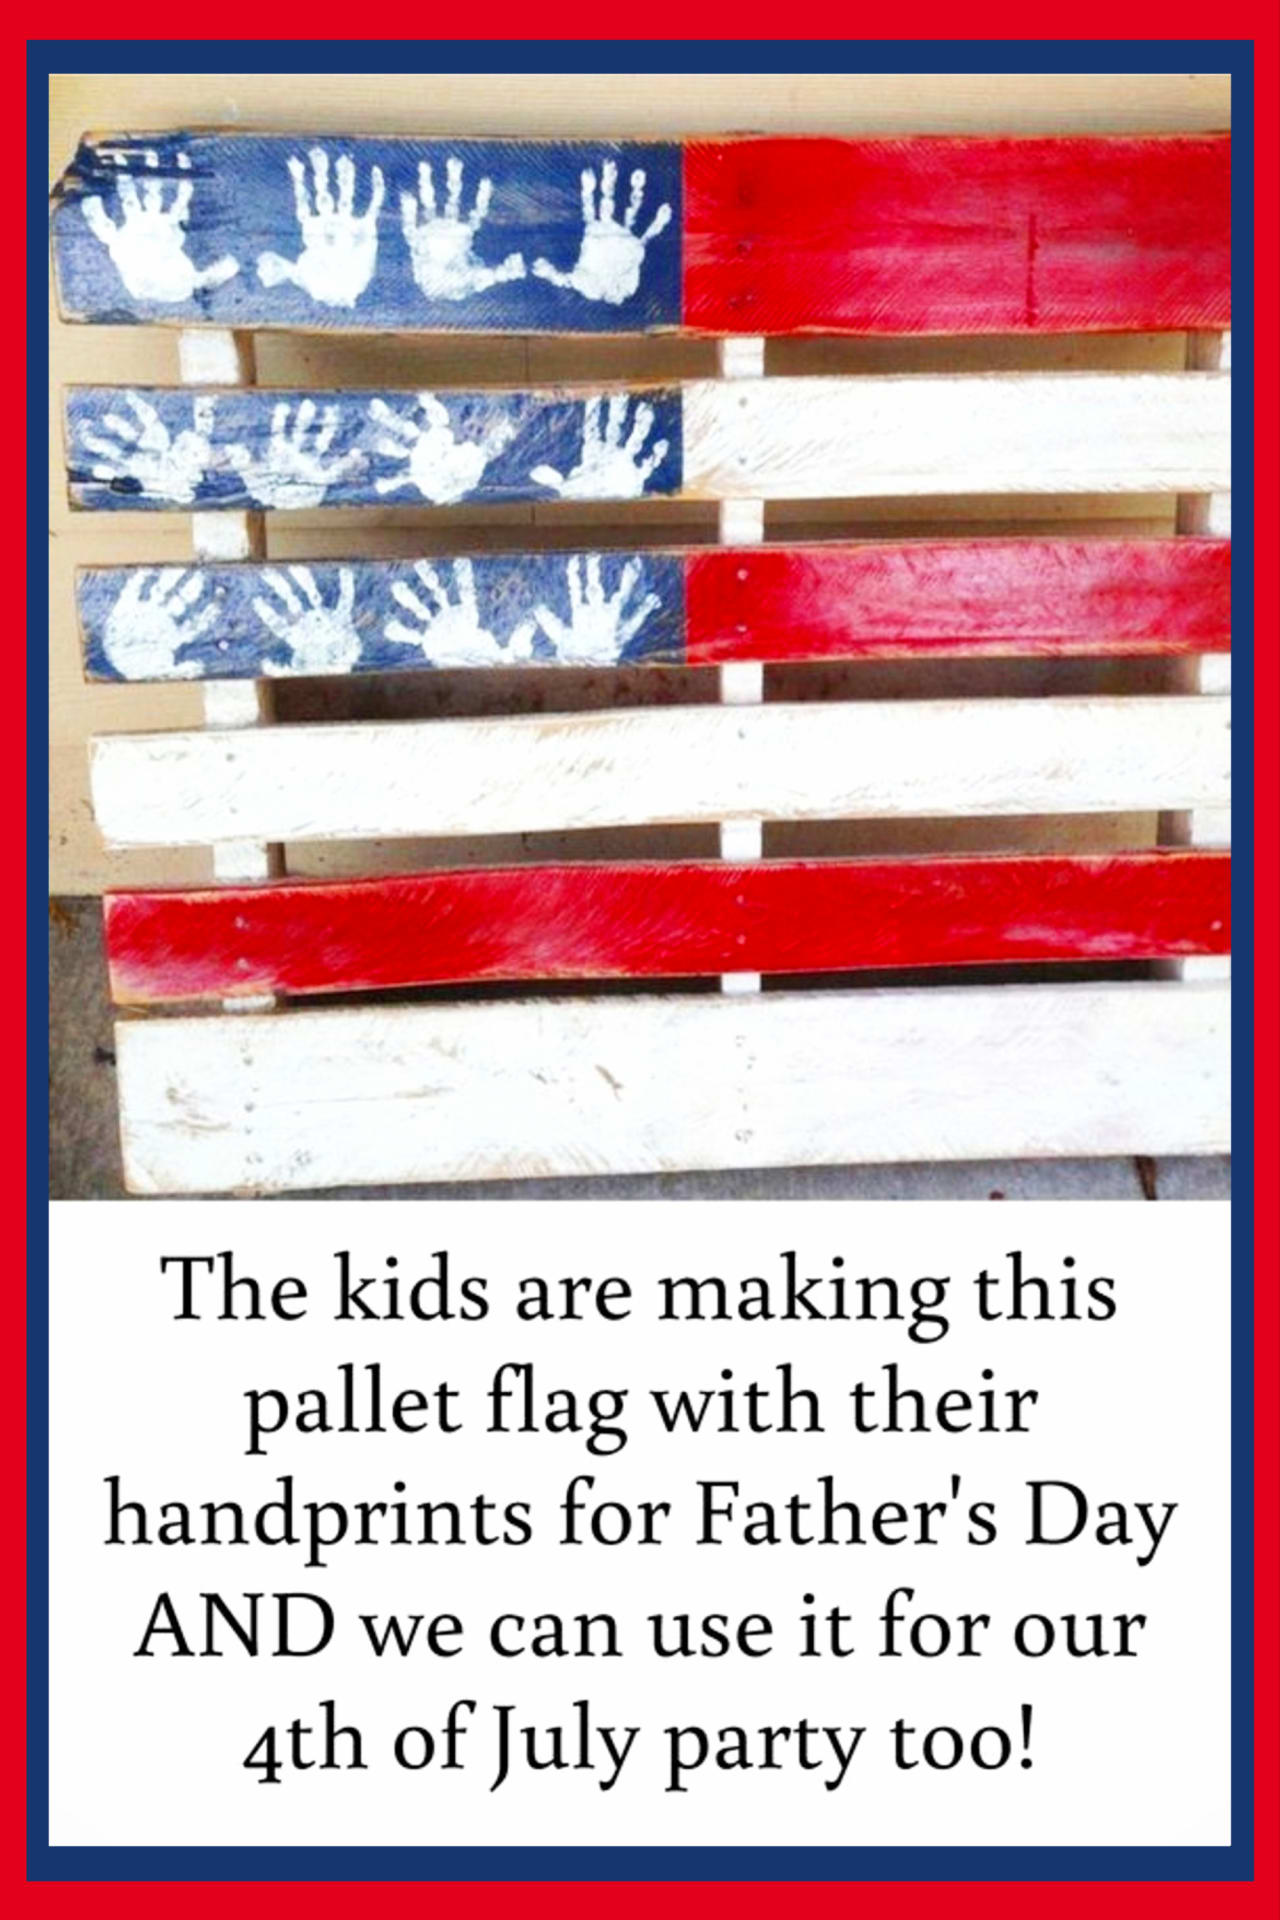 Pallet projects- easy DIY pallet projects to make or sell.  Simple beginner pallet American flag for 4th of July party and decorations - fun handprint handmade gift or craft for kids too